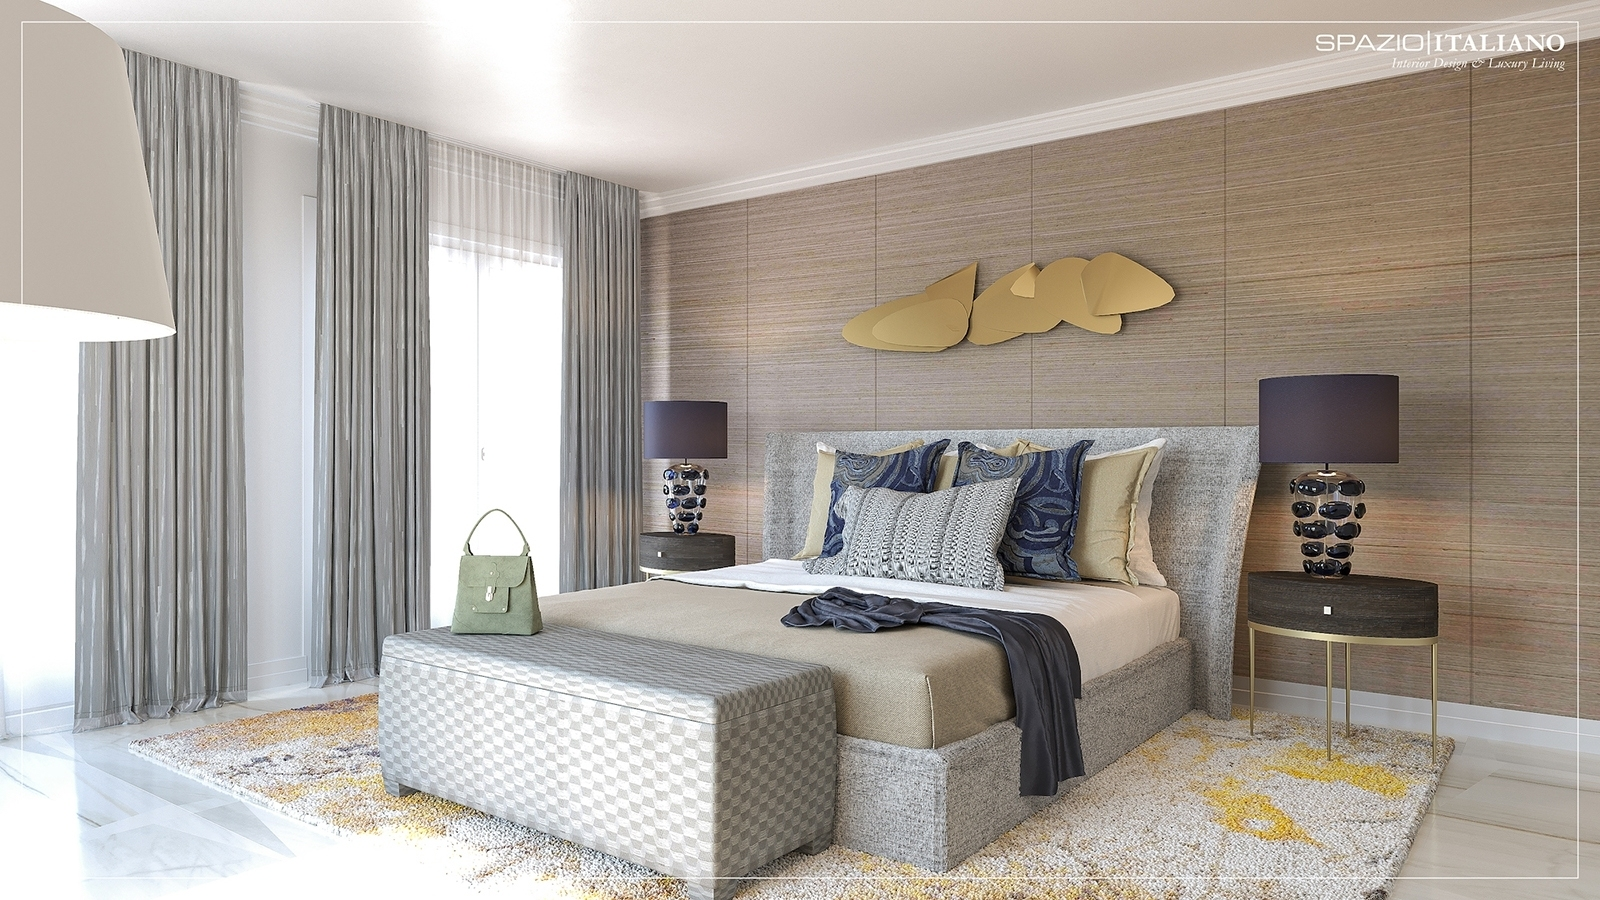 John Taylor's Villa Hermosa ultimate top tips for decorating